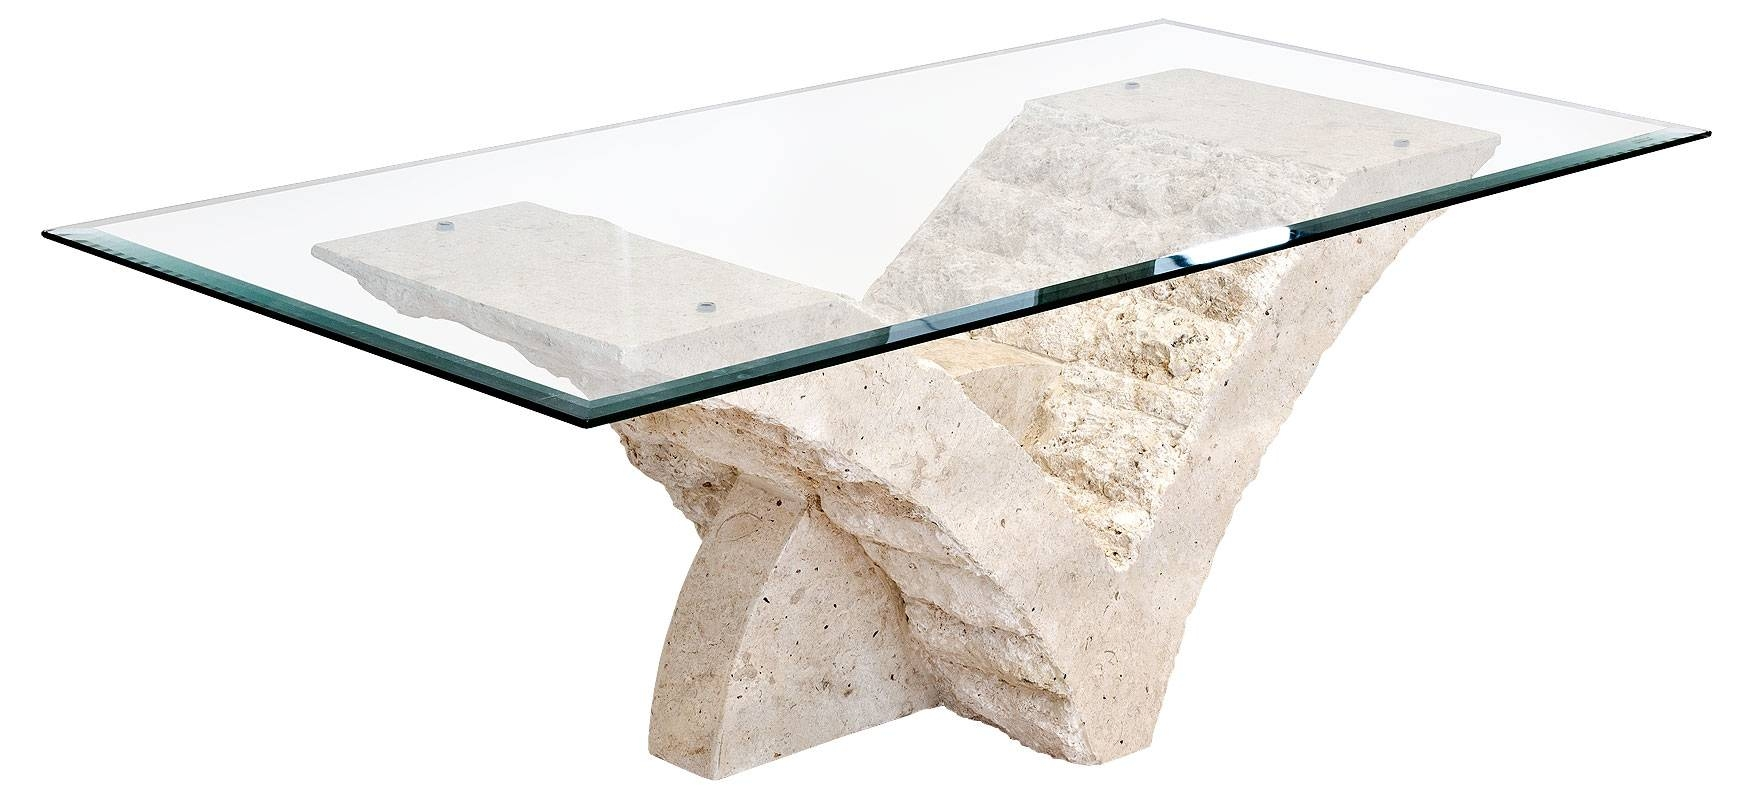 Mactan Stone And Glass Seagull Coffee Table For Stone And Glass Coffee Tables (View 6 of 15)